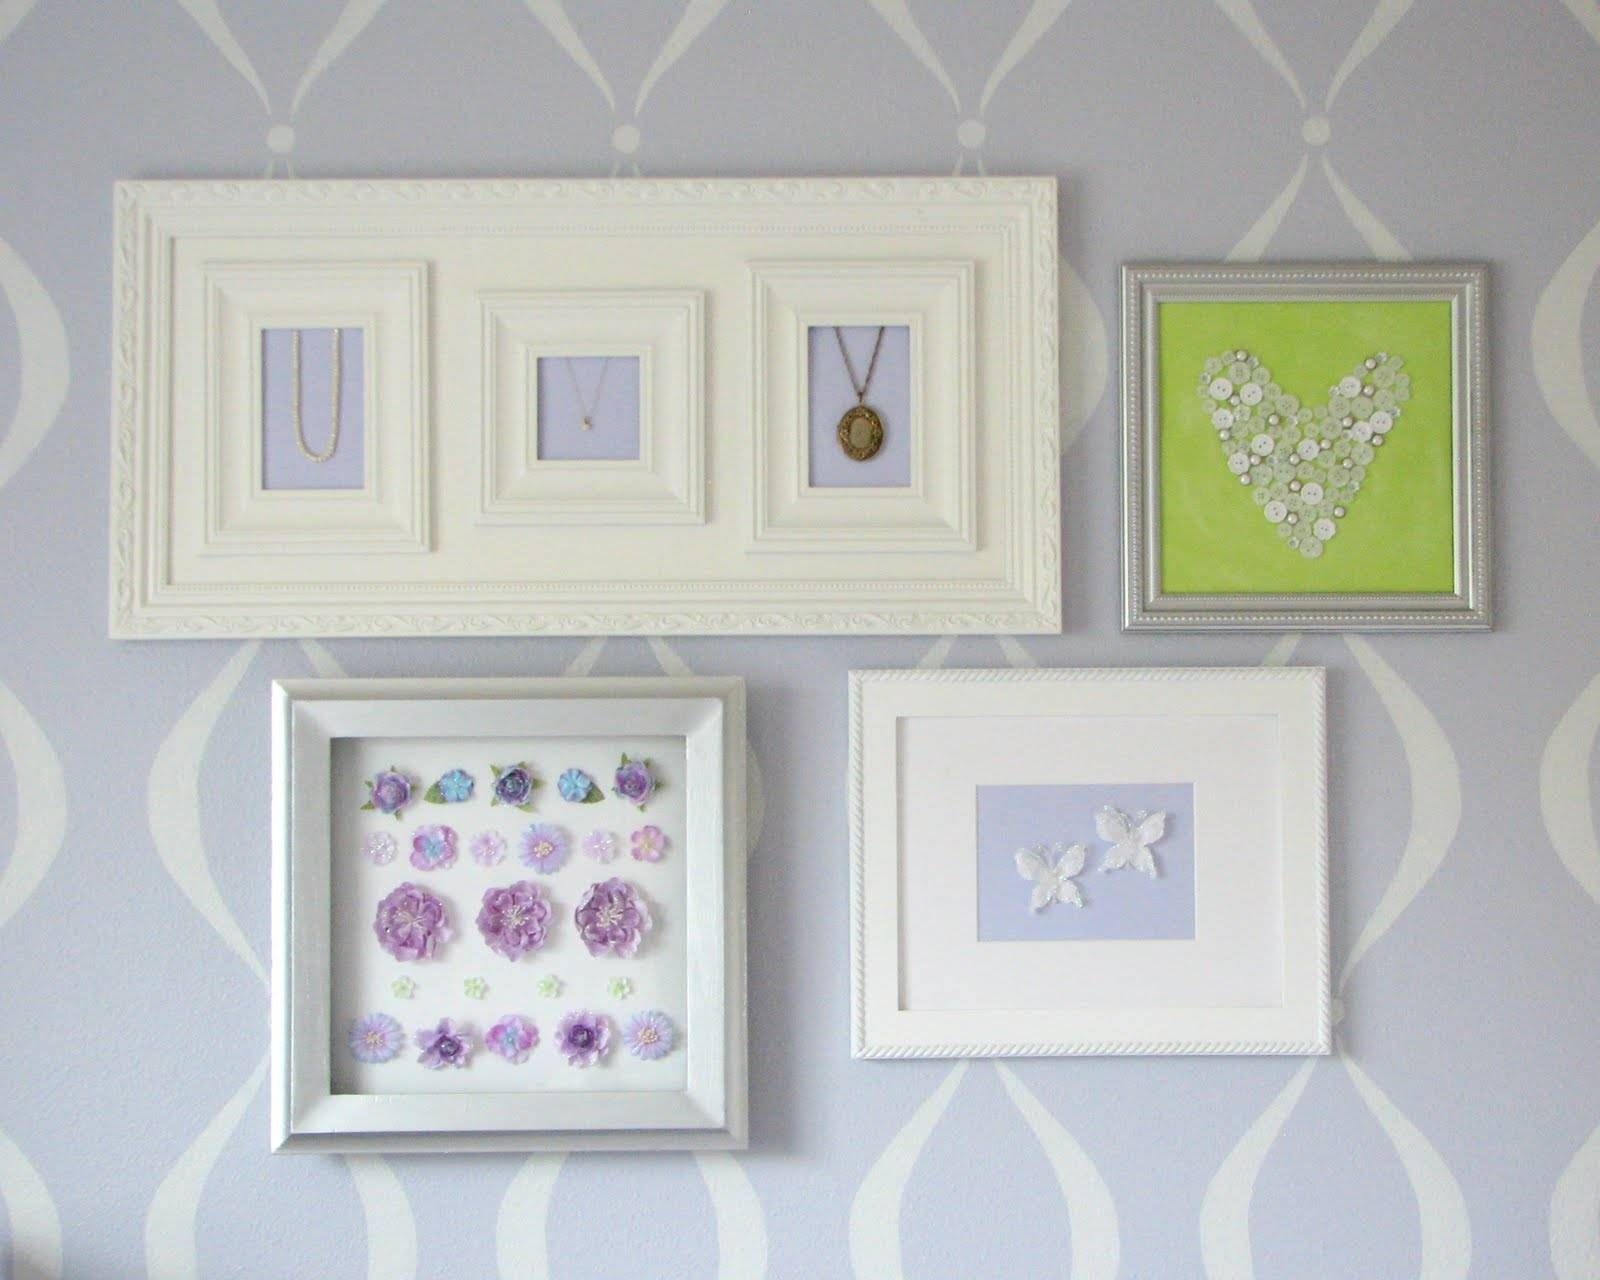 What I Made Today: Baby Girl's Nursery: Wall Art Regarding Most Popular 3D Wall Art For Baby Nursery (View 20 of 20)